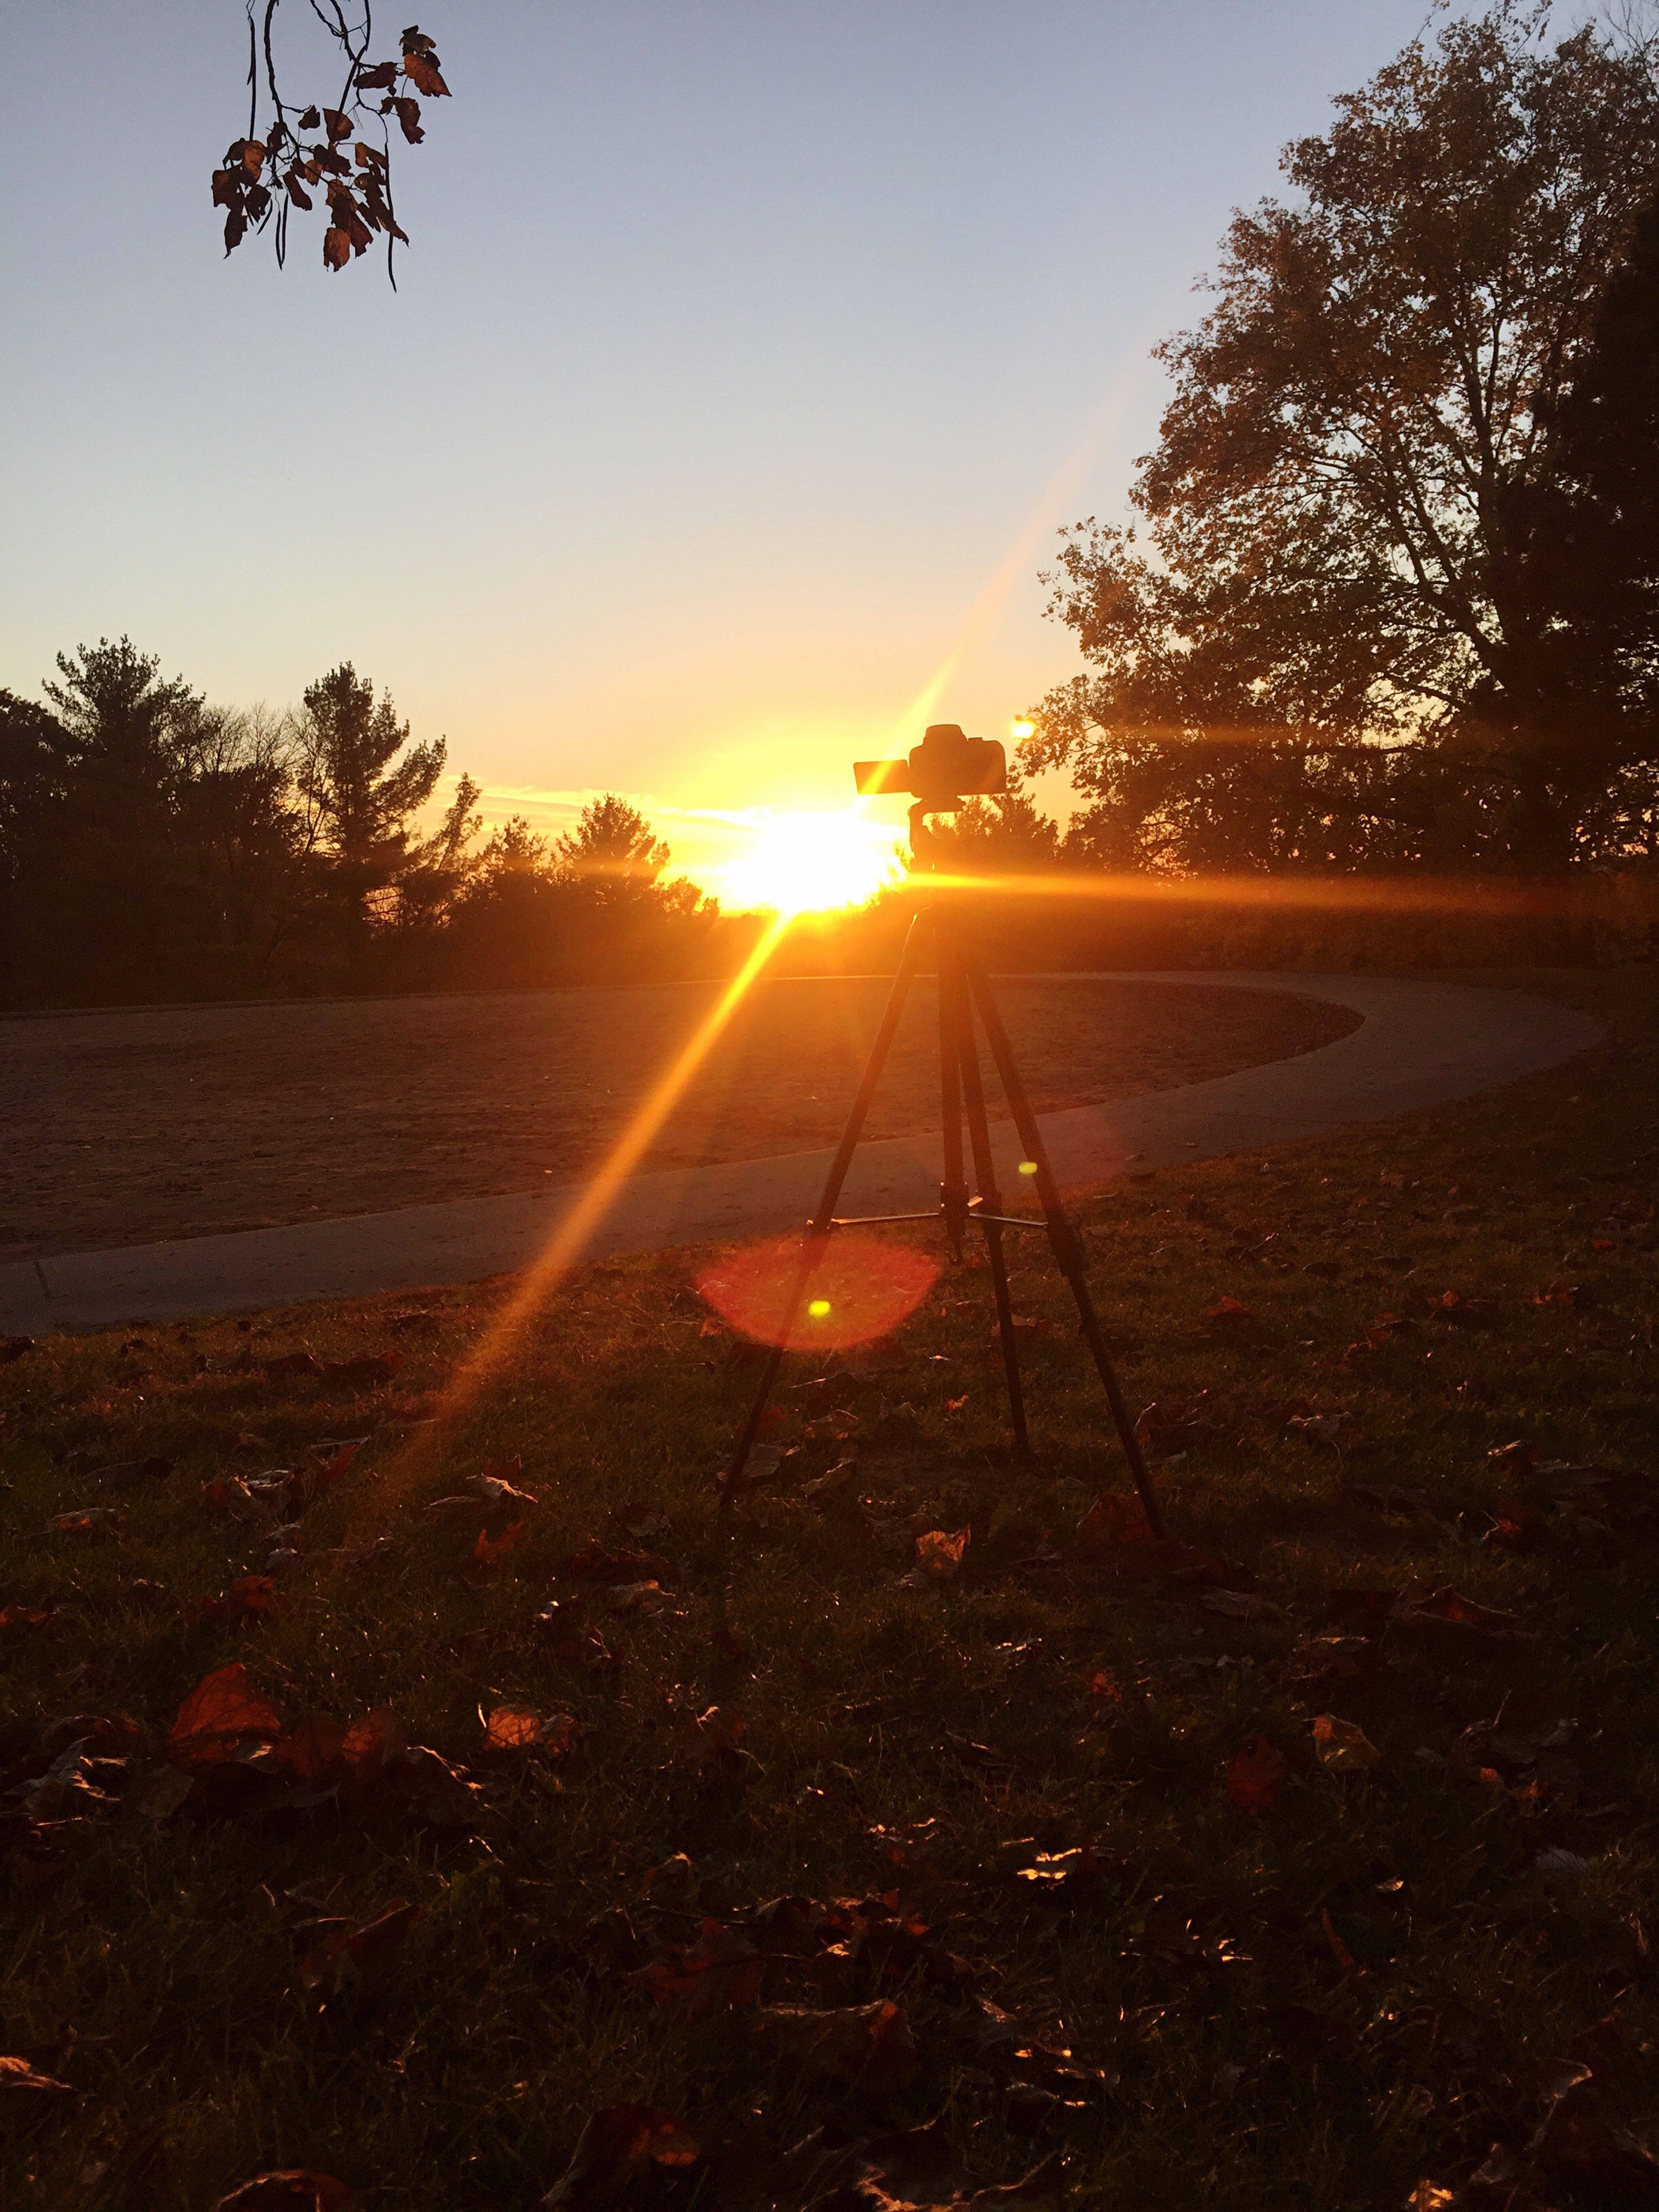 Sunset Sunlight Sun Lens Flare Tree Nature Sunbeam Beauty In Nature Scenics Tranquility Tranquil Scene Sky Outdoors No People Sunrise Day Calm Taking Photos Time To Reflect taking pics of me taking pics ...... interval shots